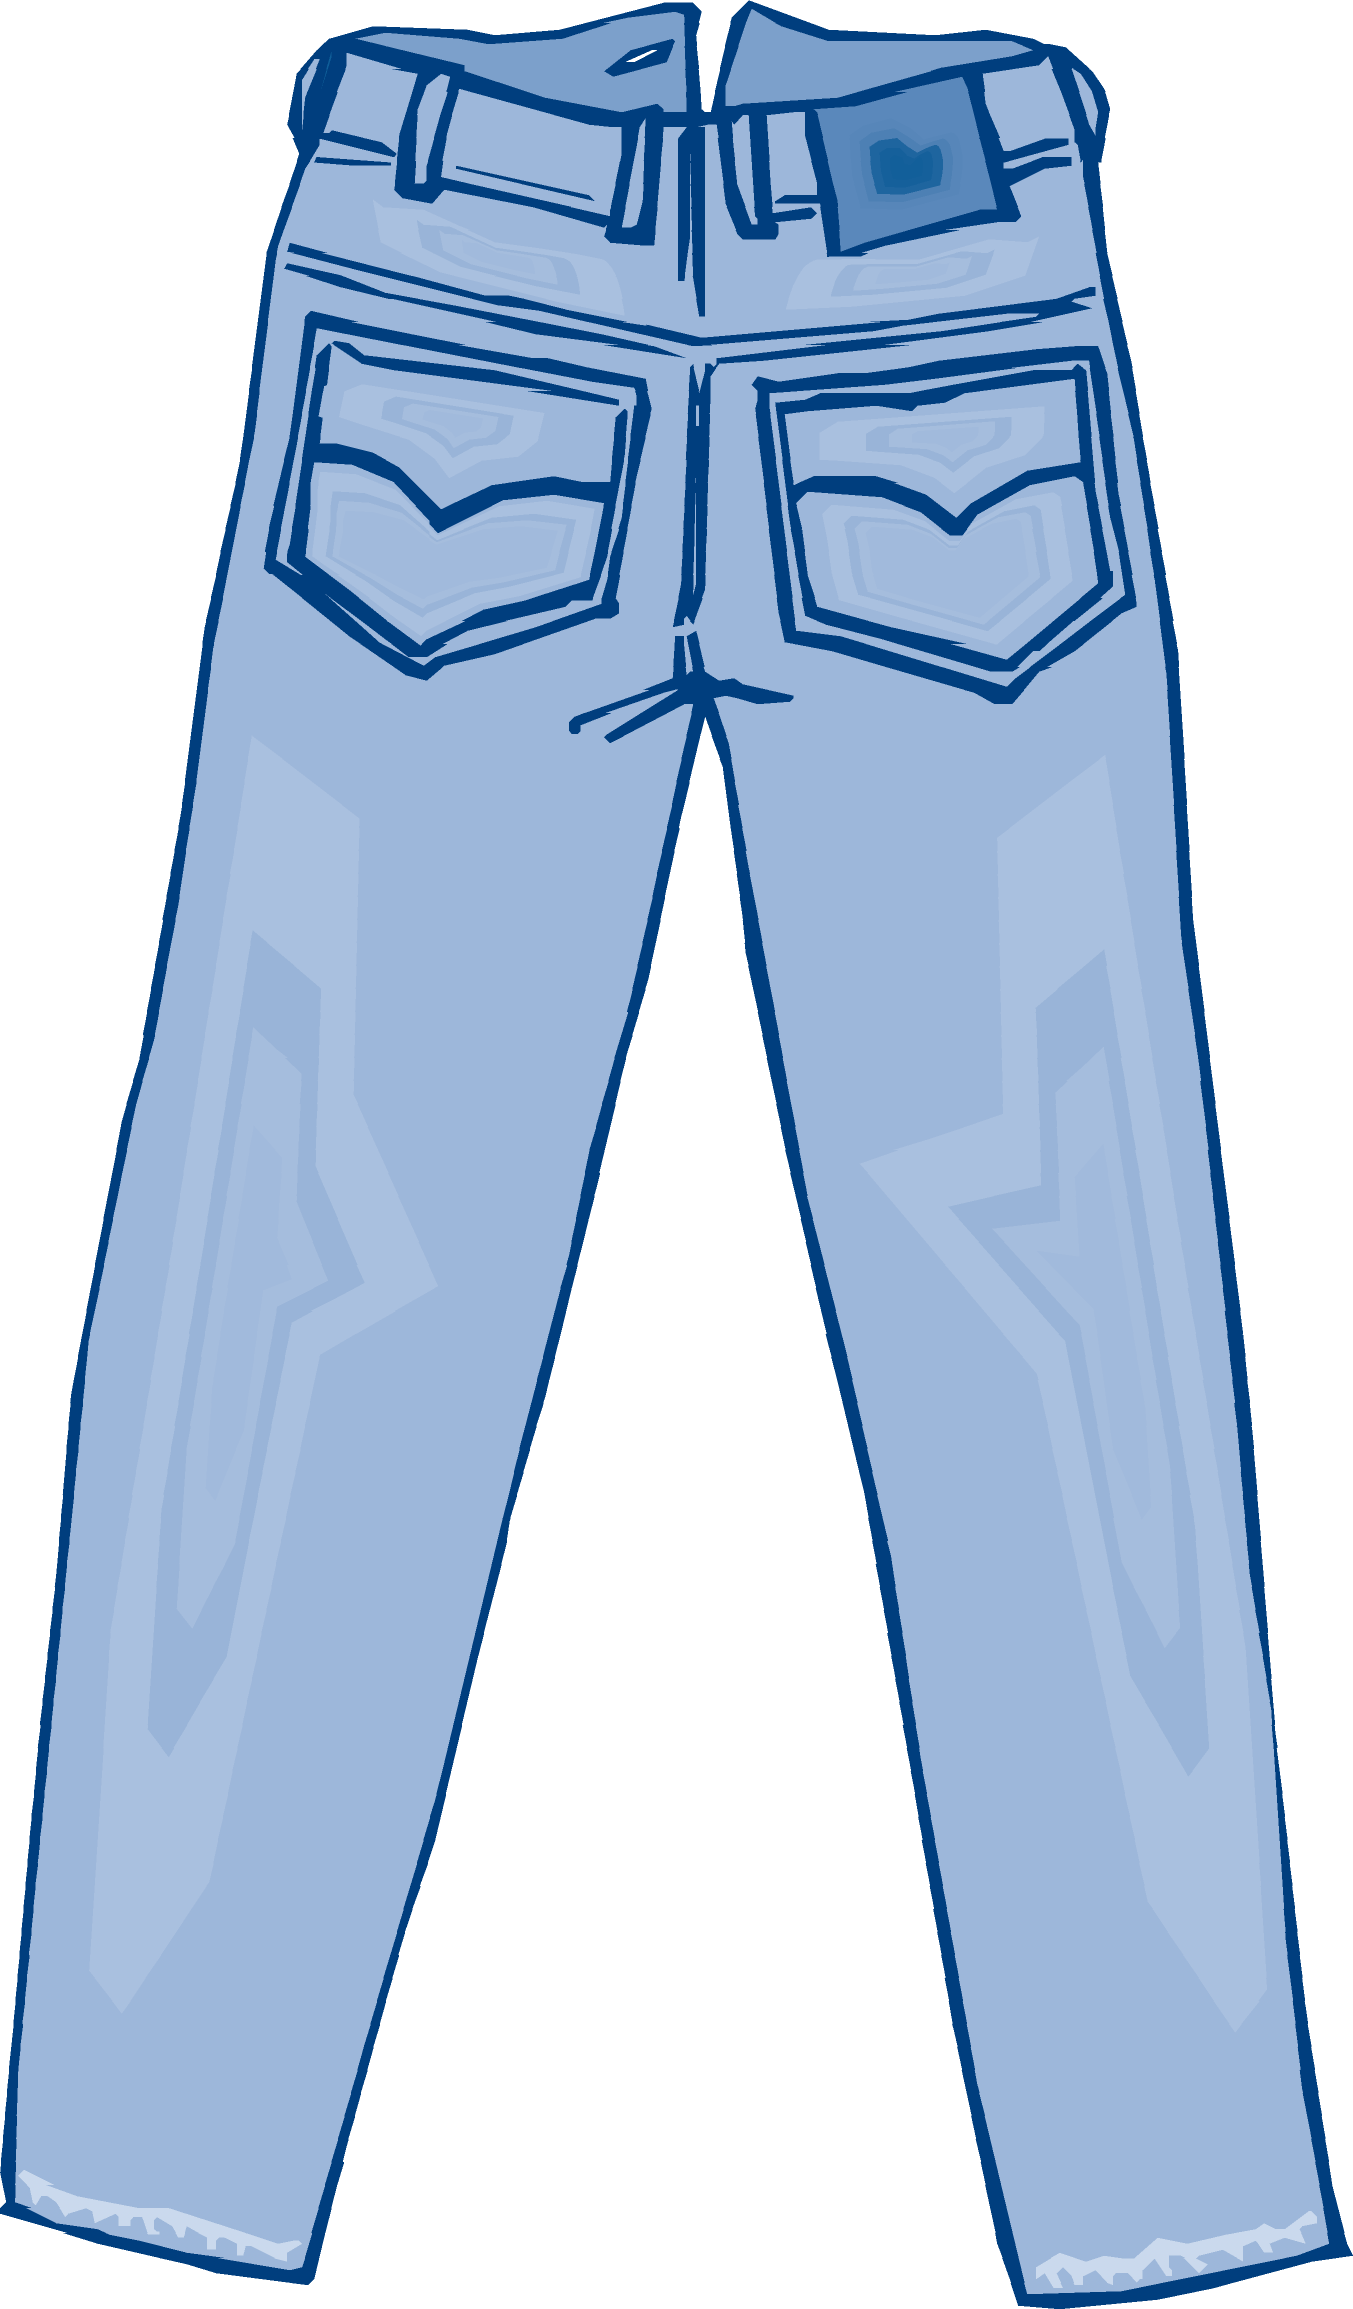 Clip Art Old Jeans Clipart. Image Of Jea-Clip Art Old Jeans Clipart. Image Of Jeans. Jeans cliparts-5